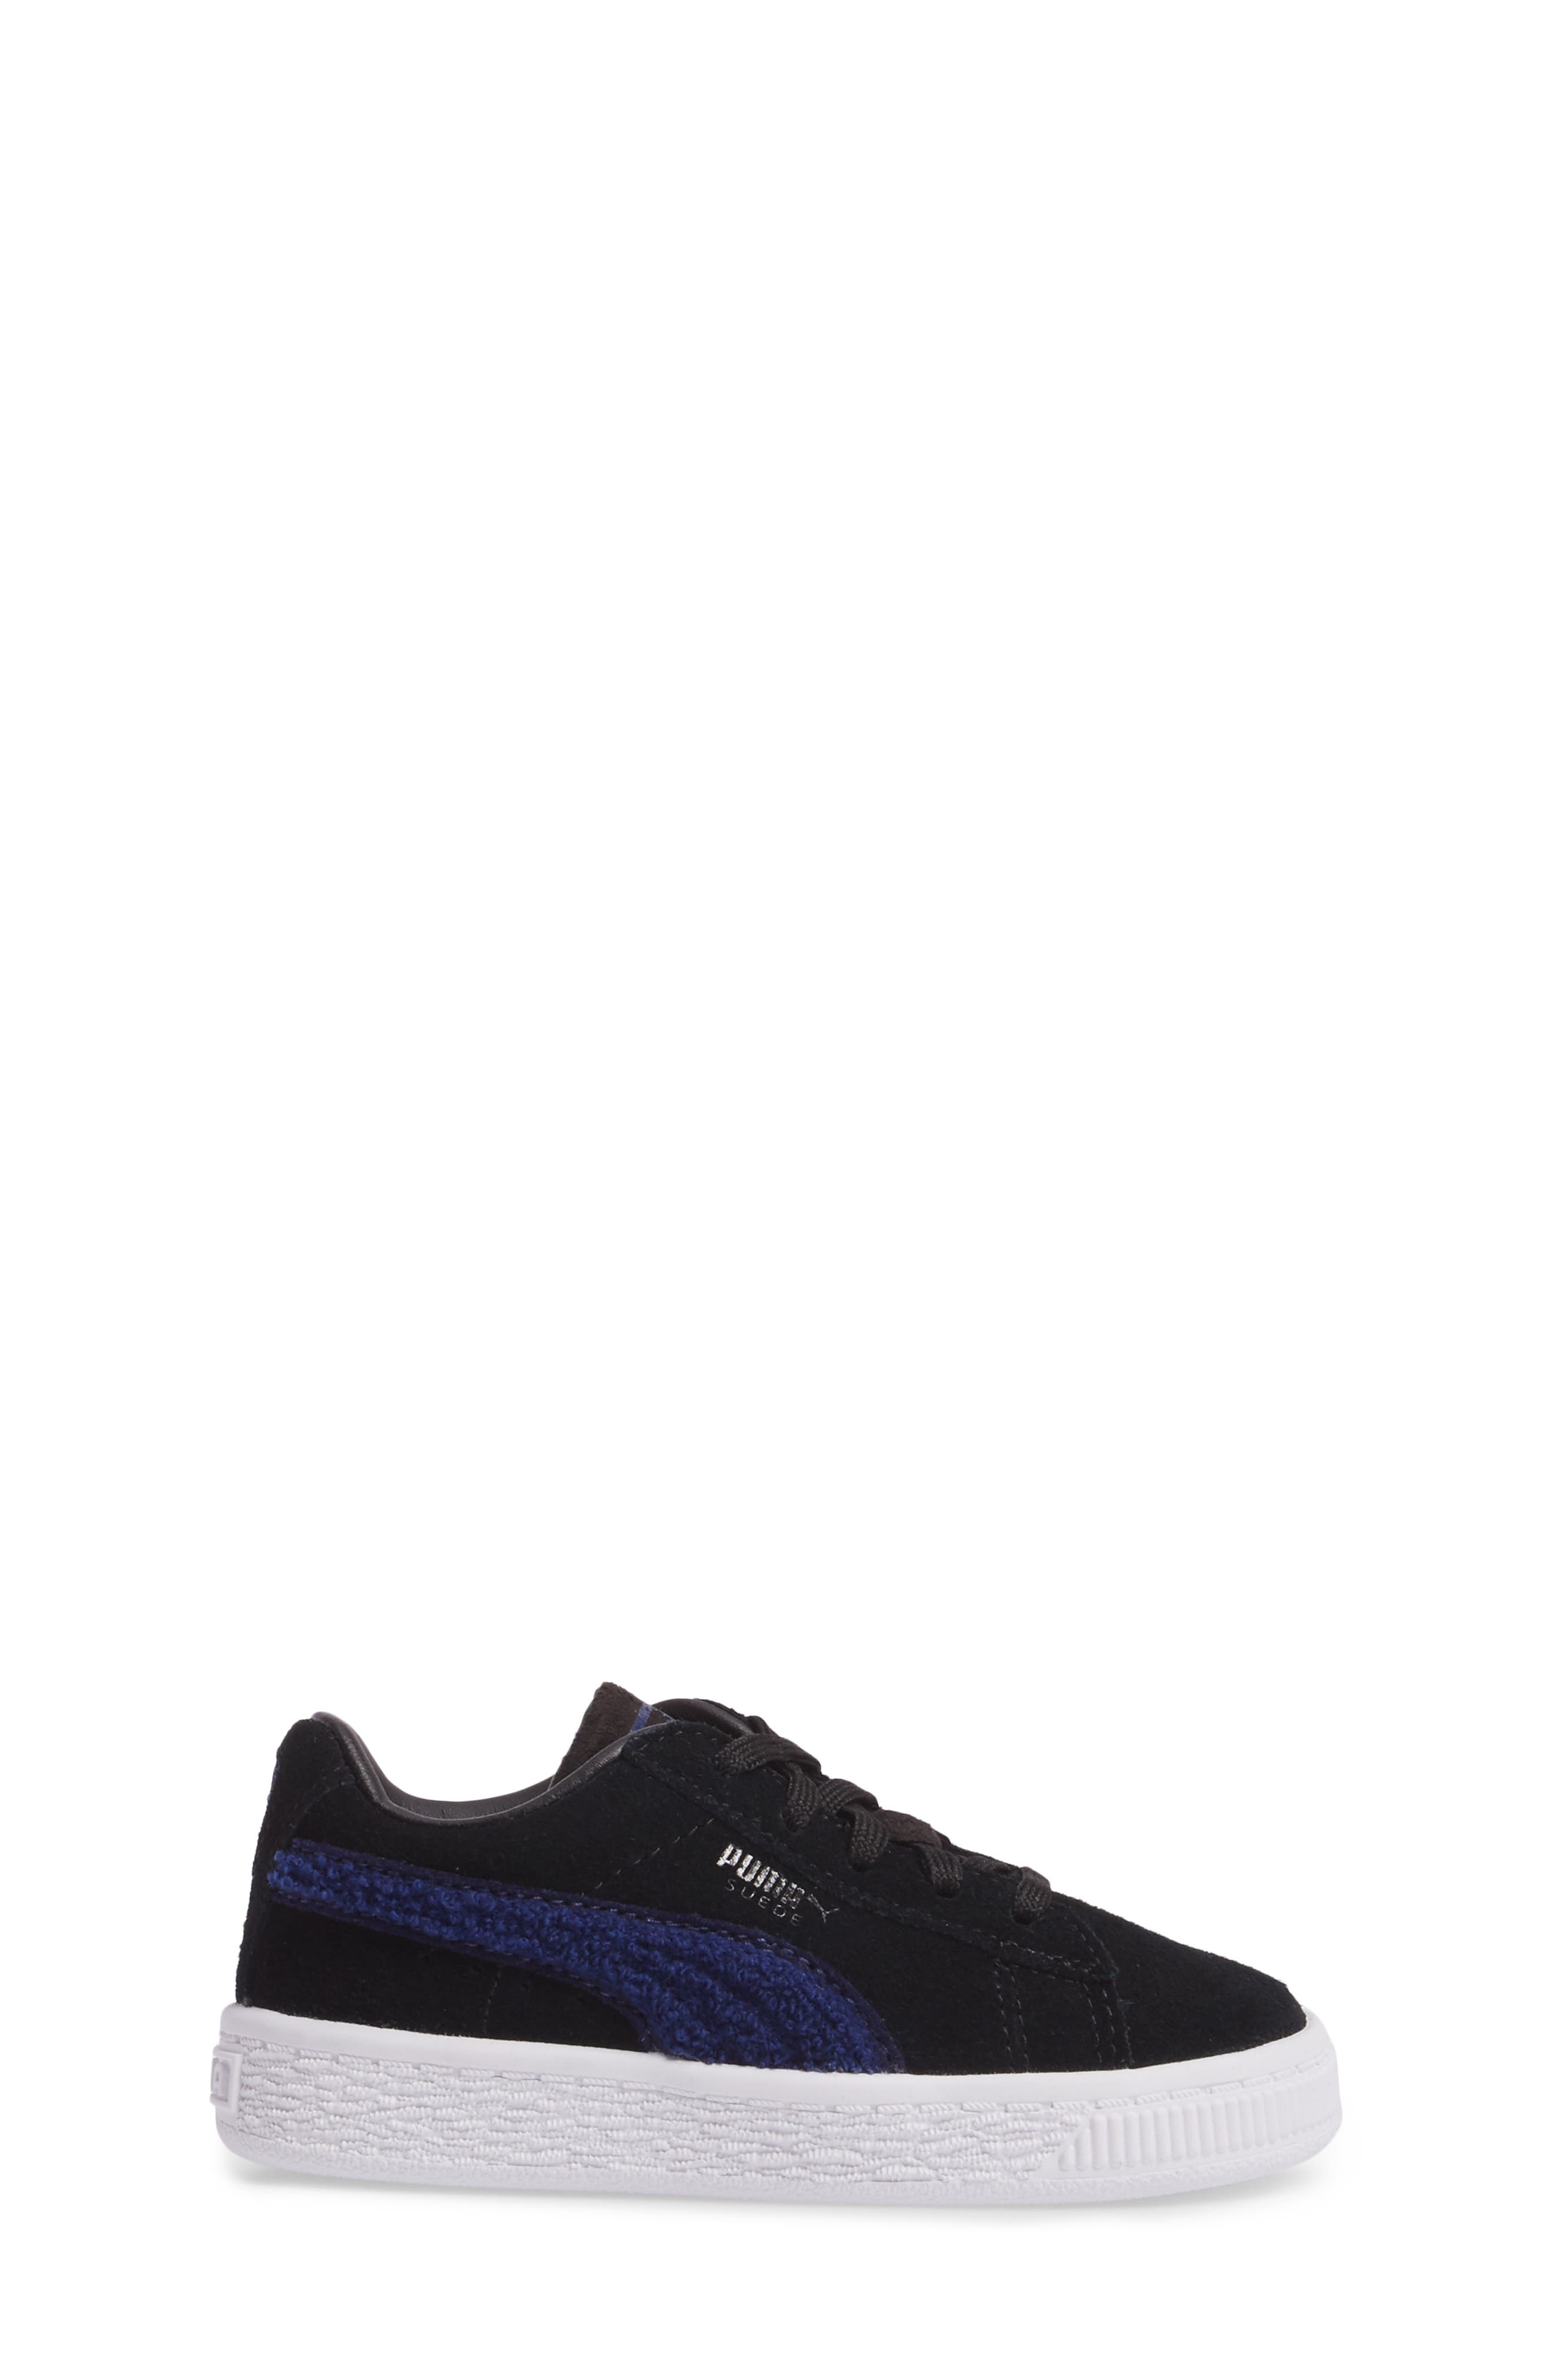 Classic Terry Sneaker,                             Alternate thumbnail 3, color,                             001